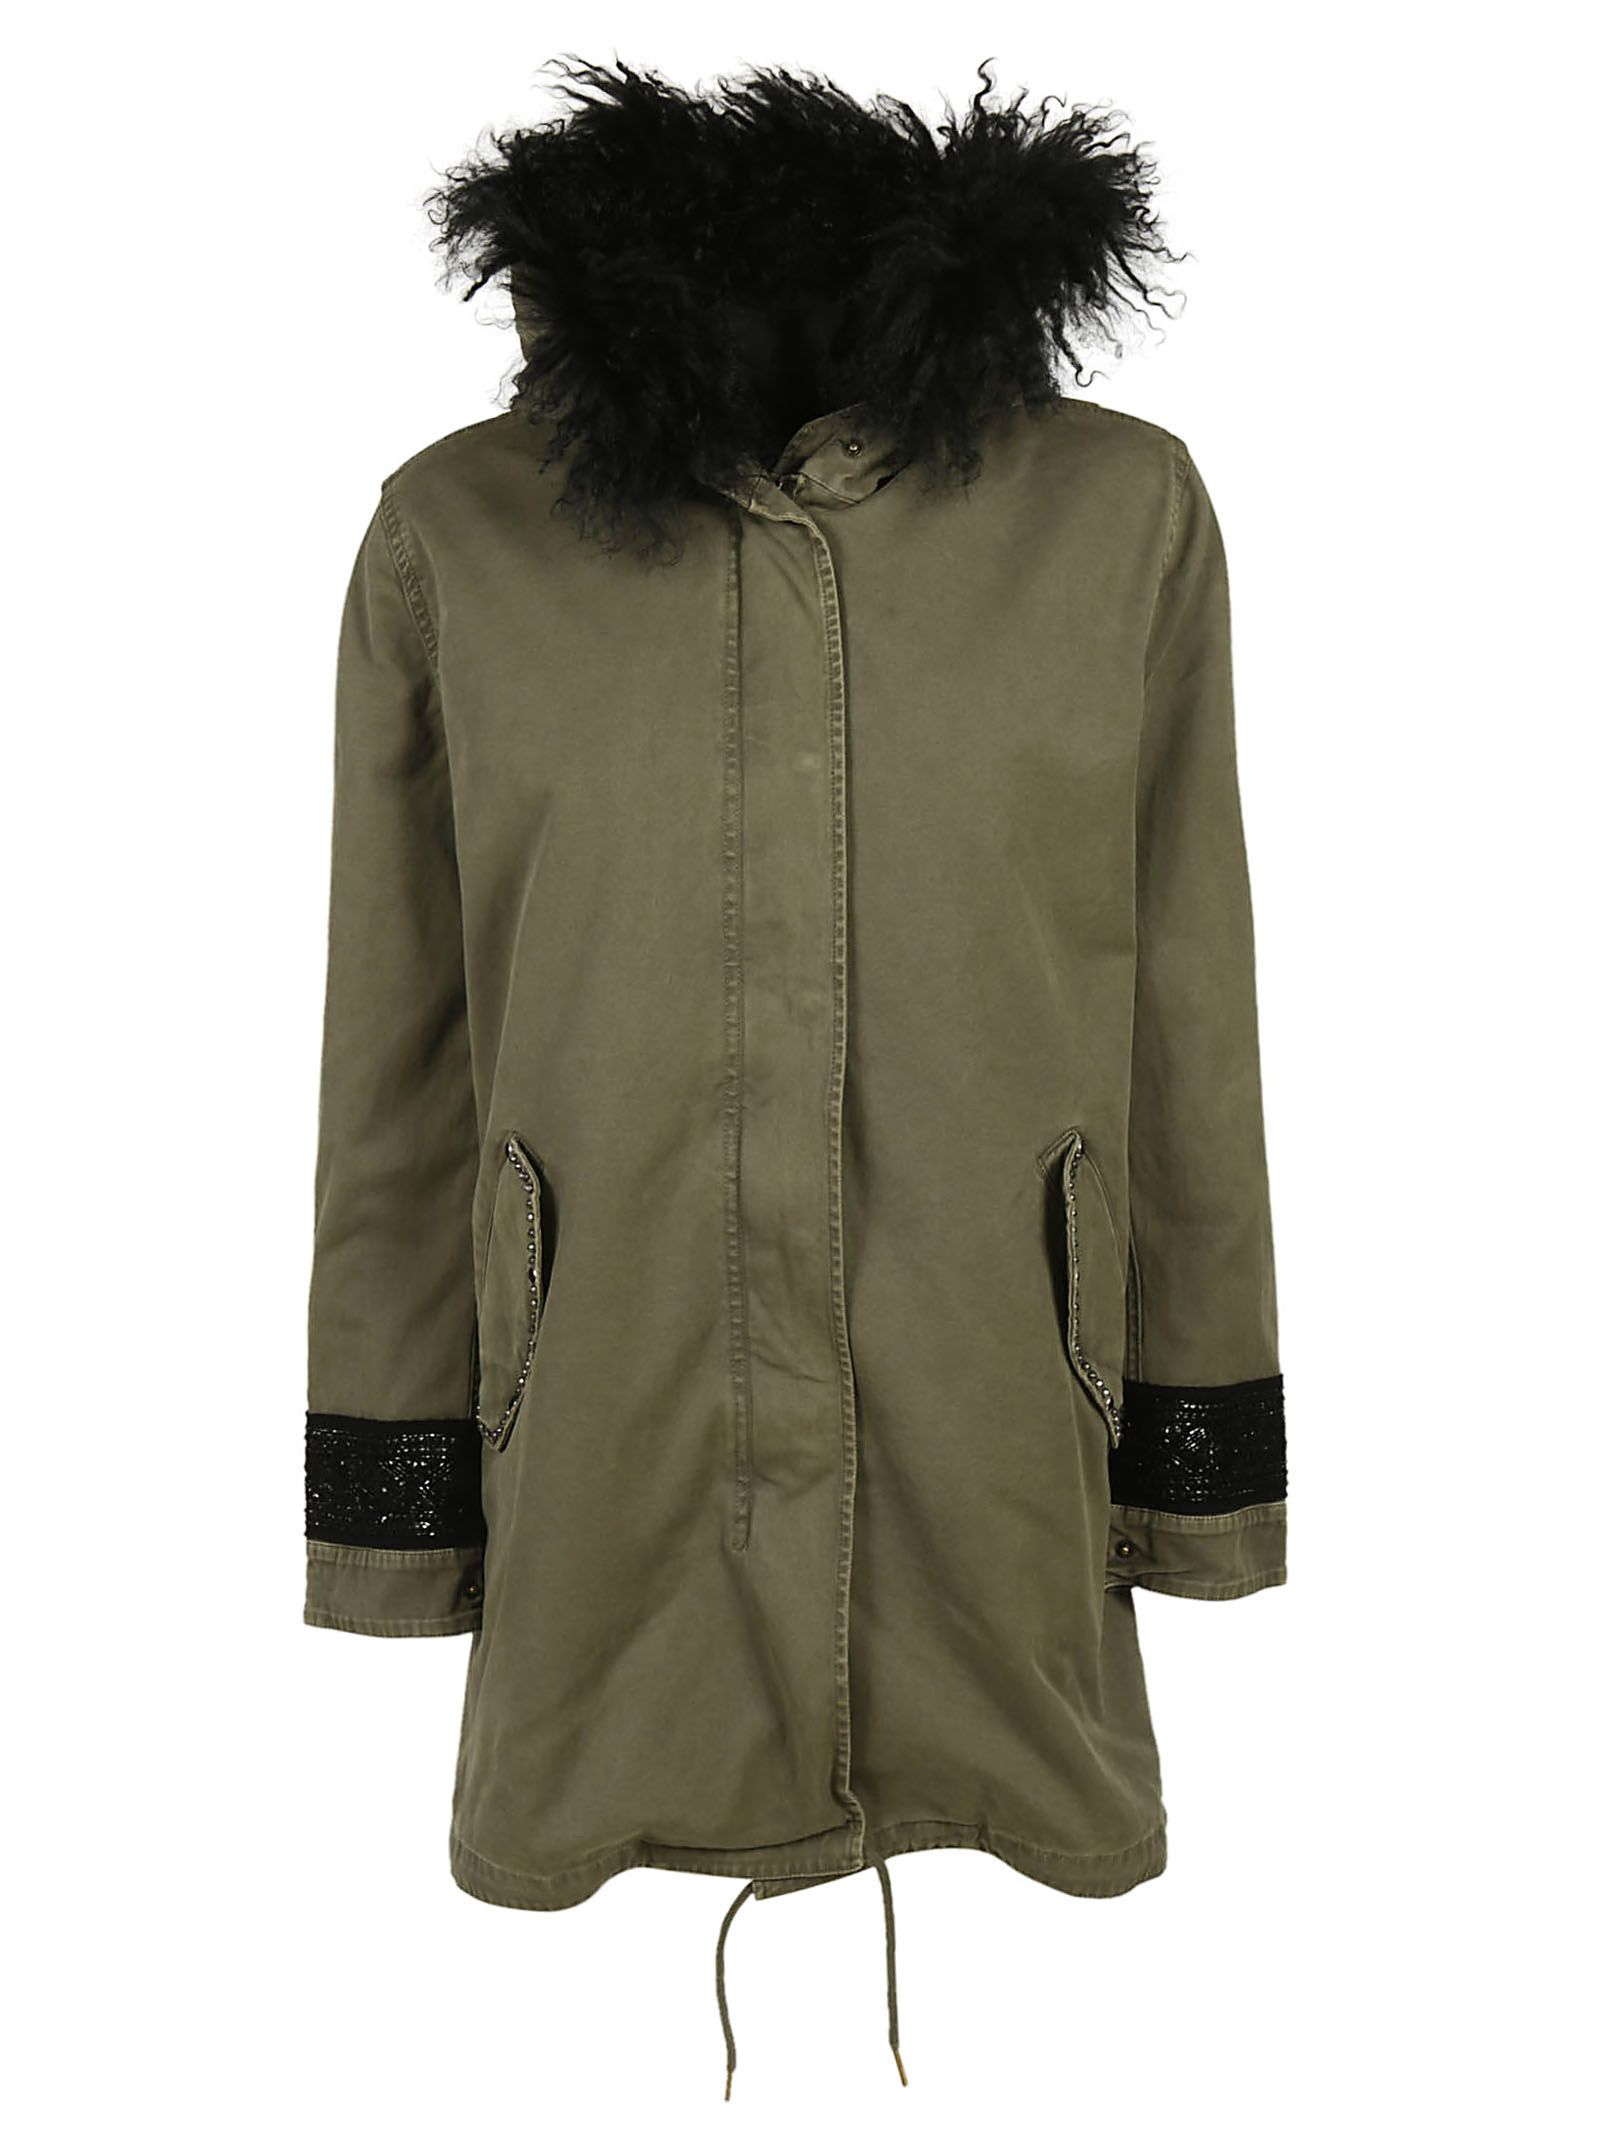 MASON'S Embroidered Coat in Verde